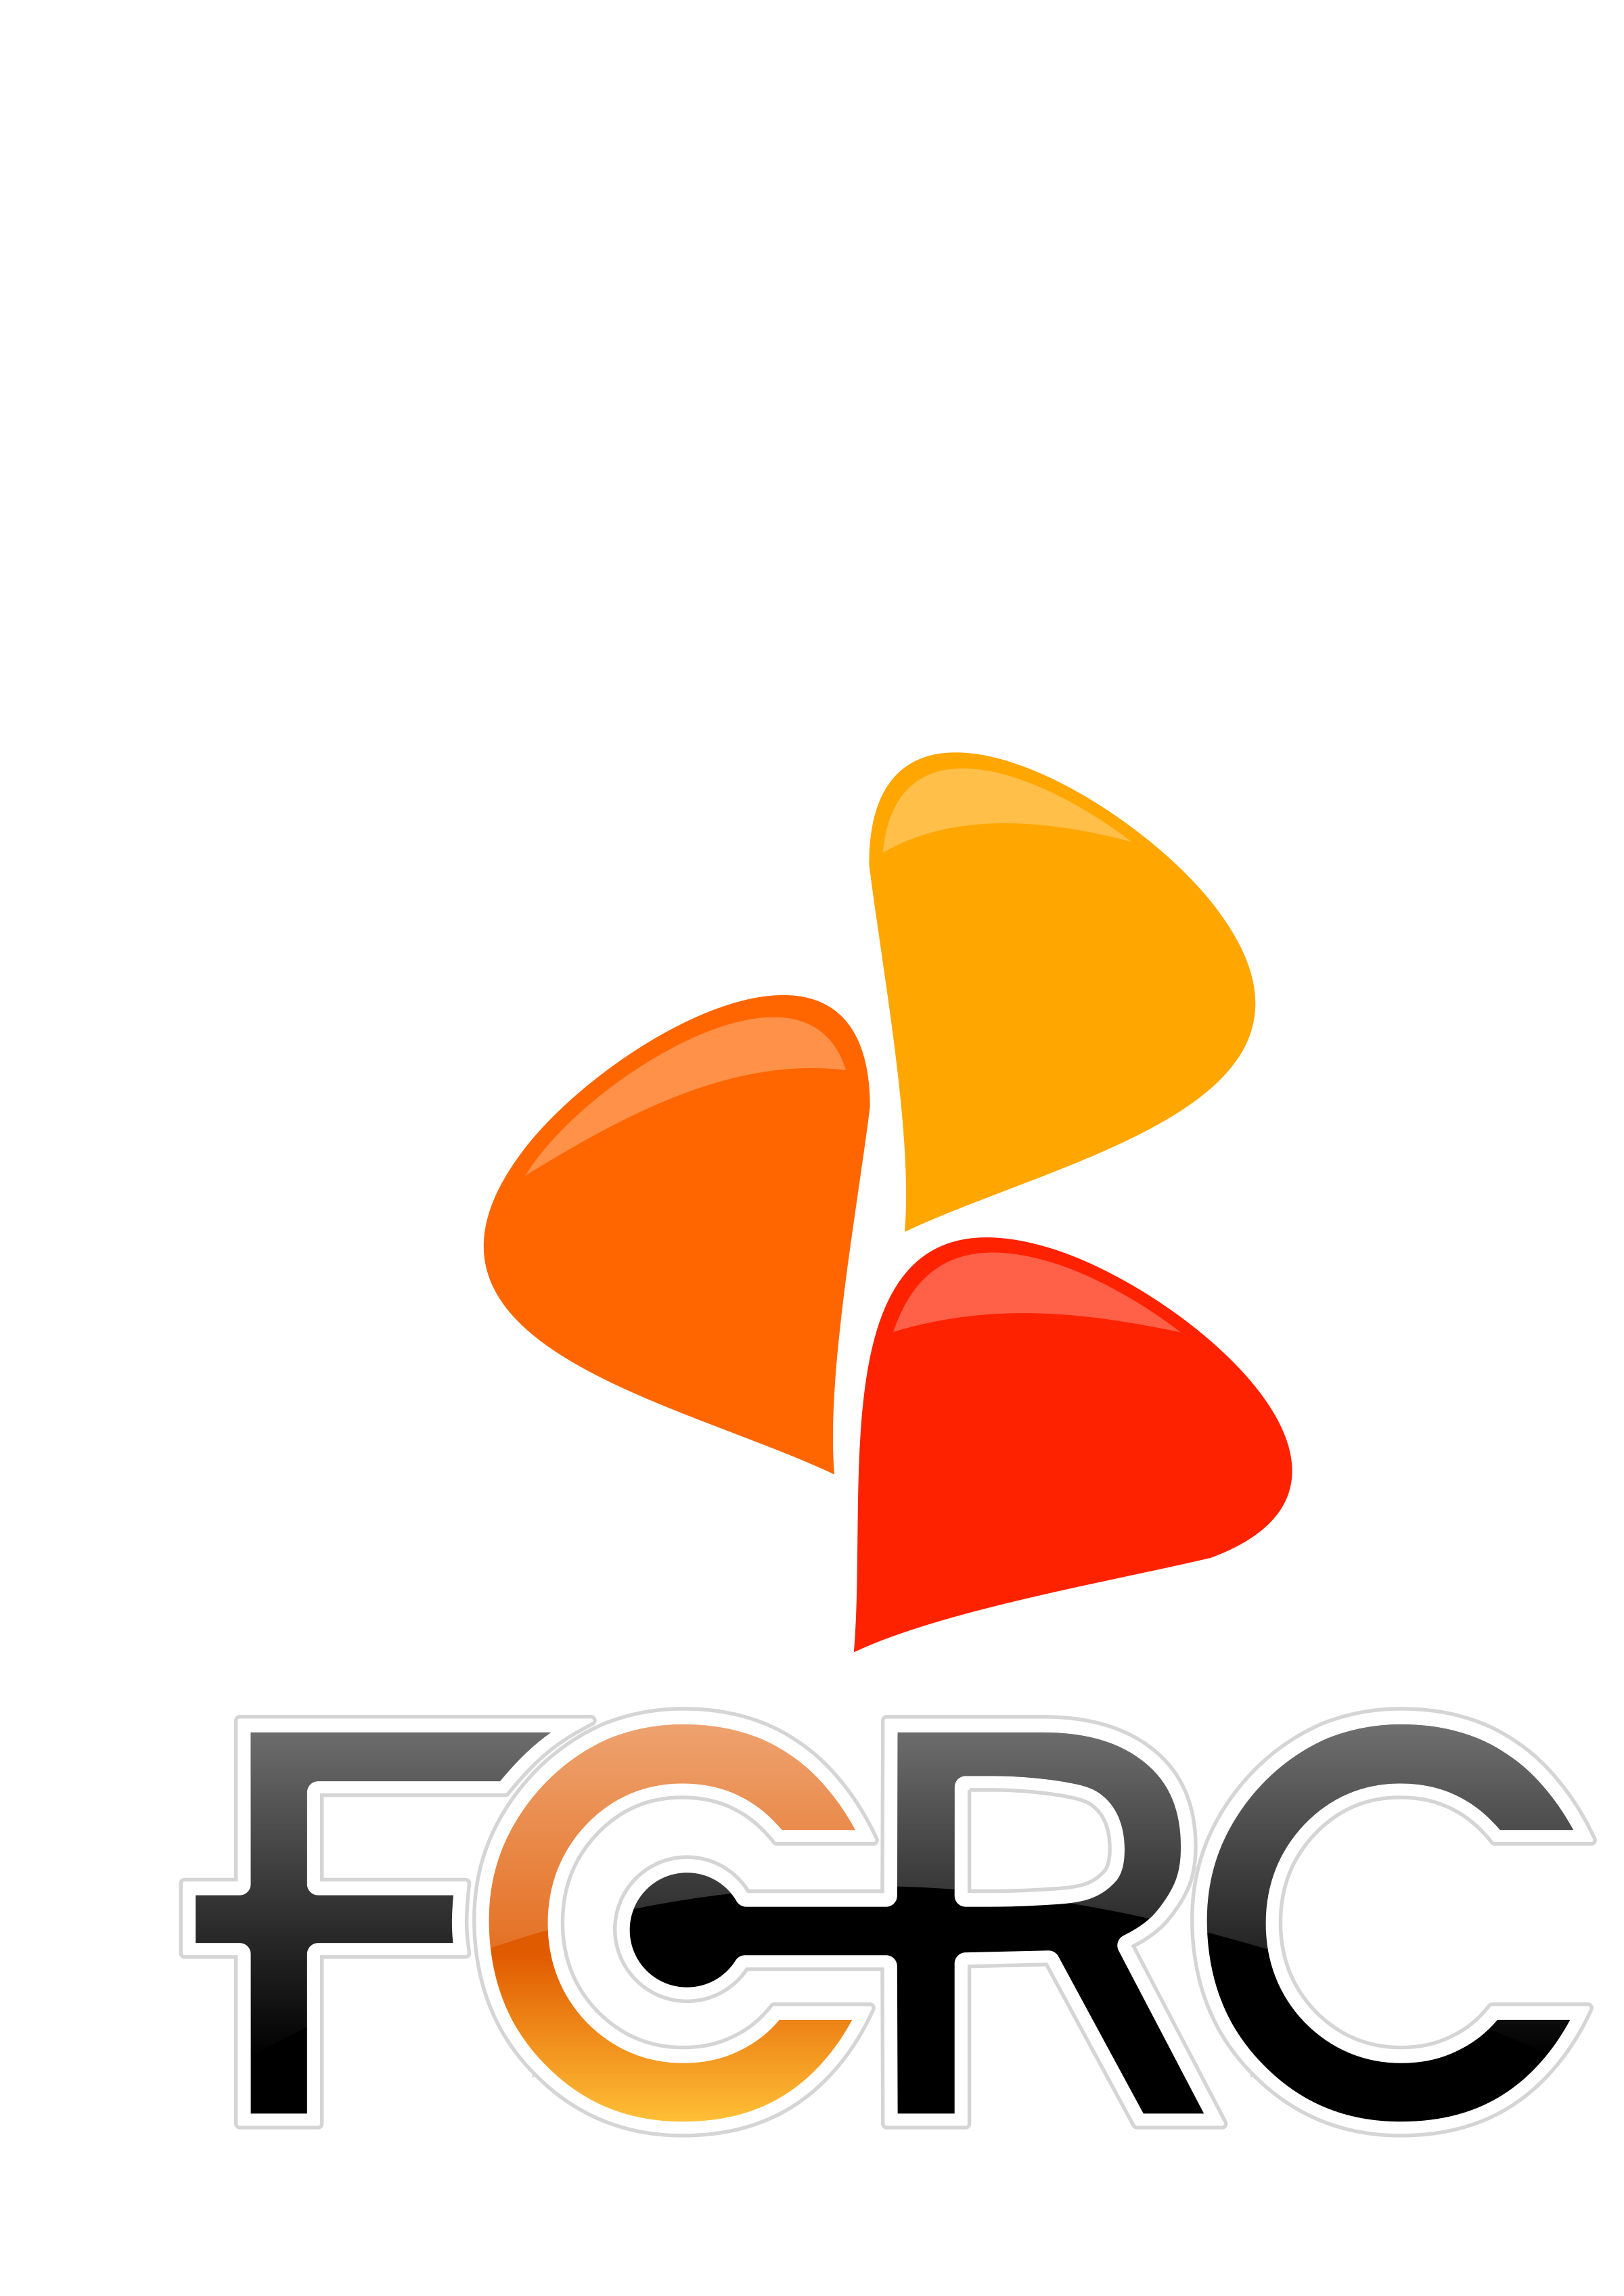 FCRC speech bubble logo and text by timeth